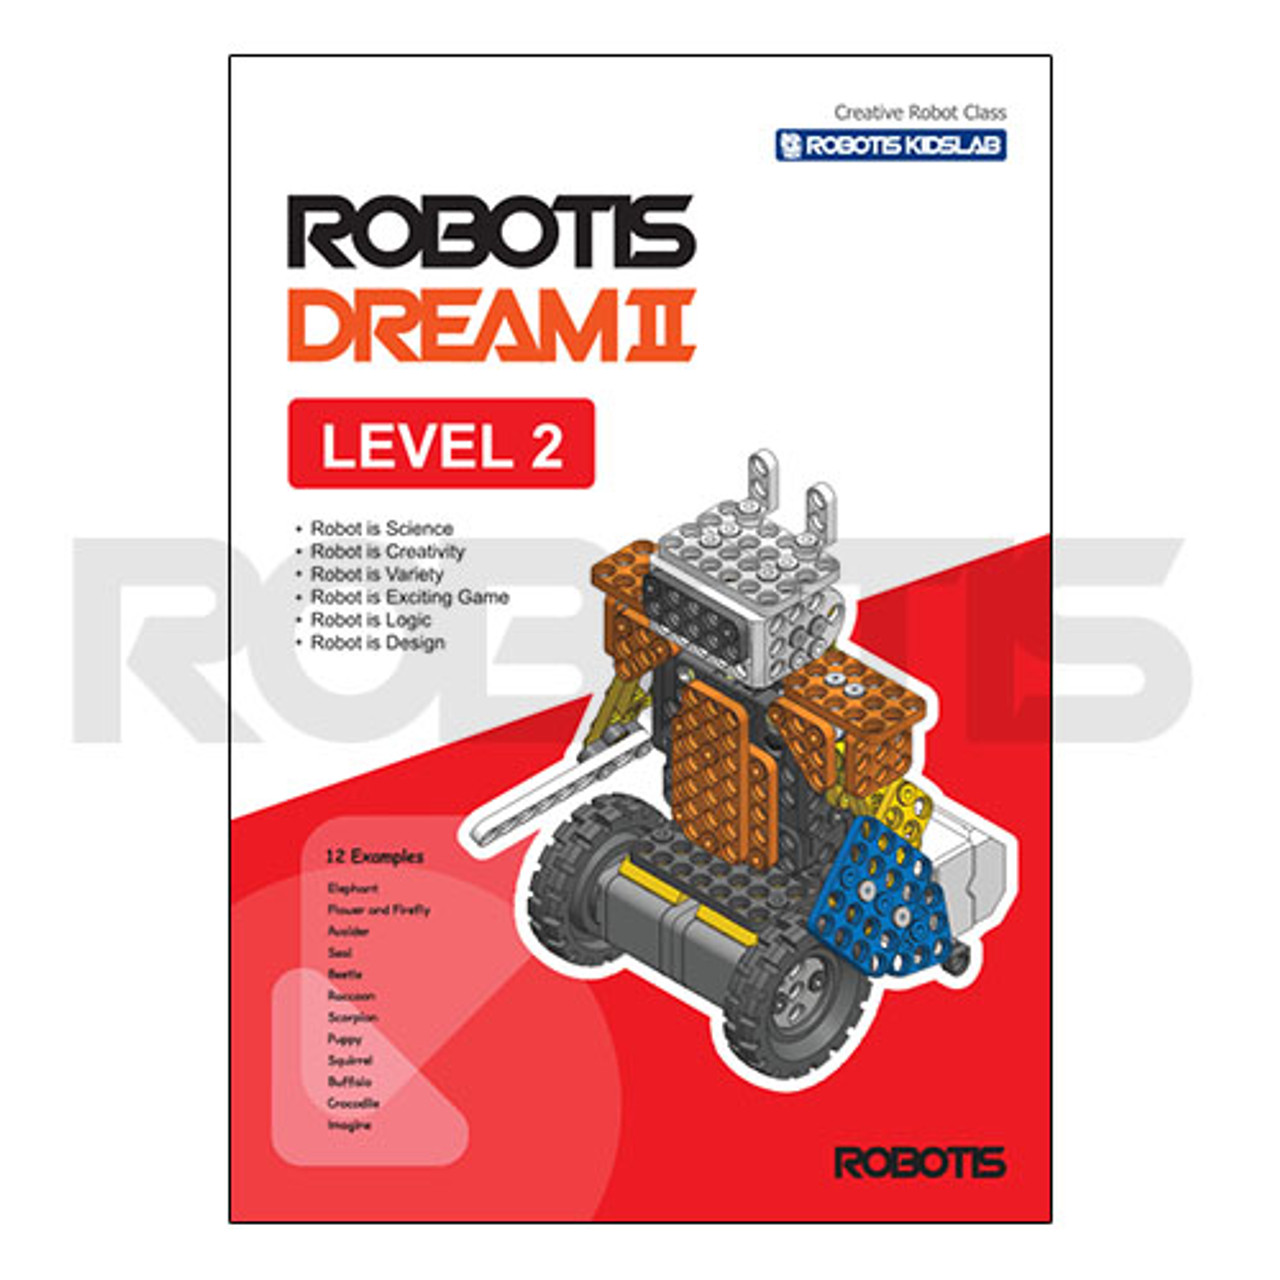 ROBOTIS DREAM II Level 2 Workbook [EN]